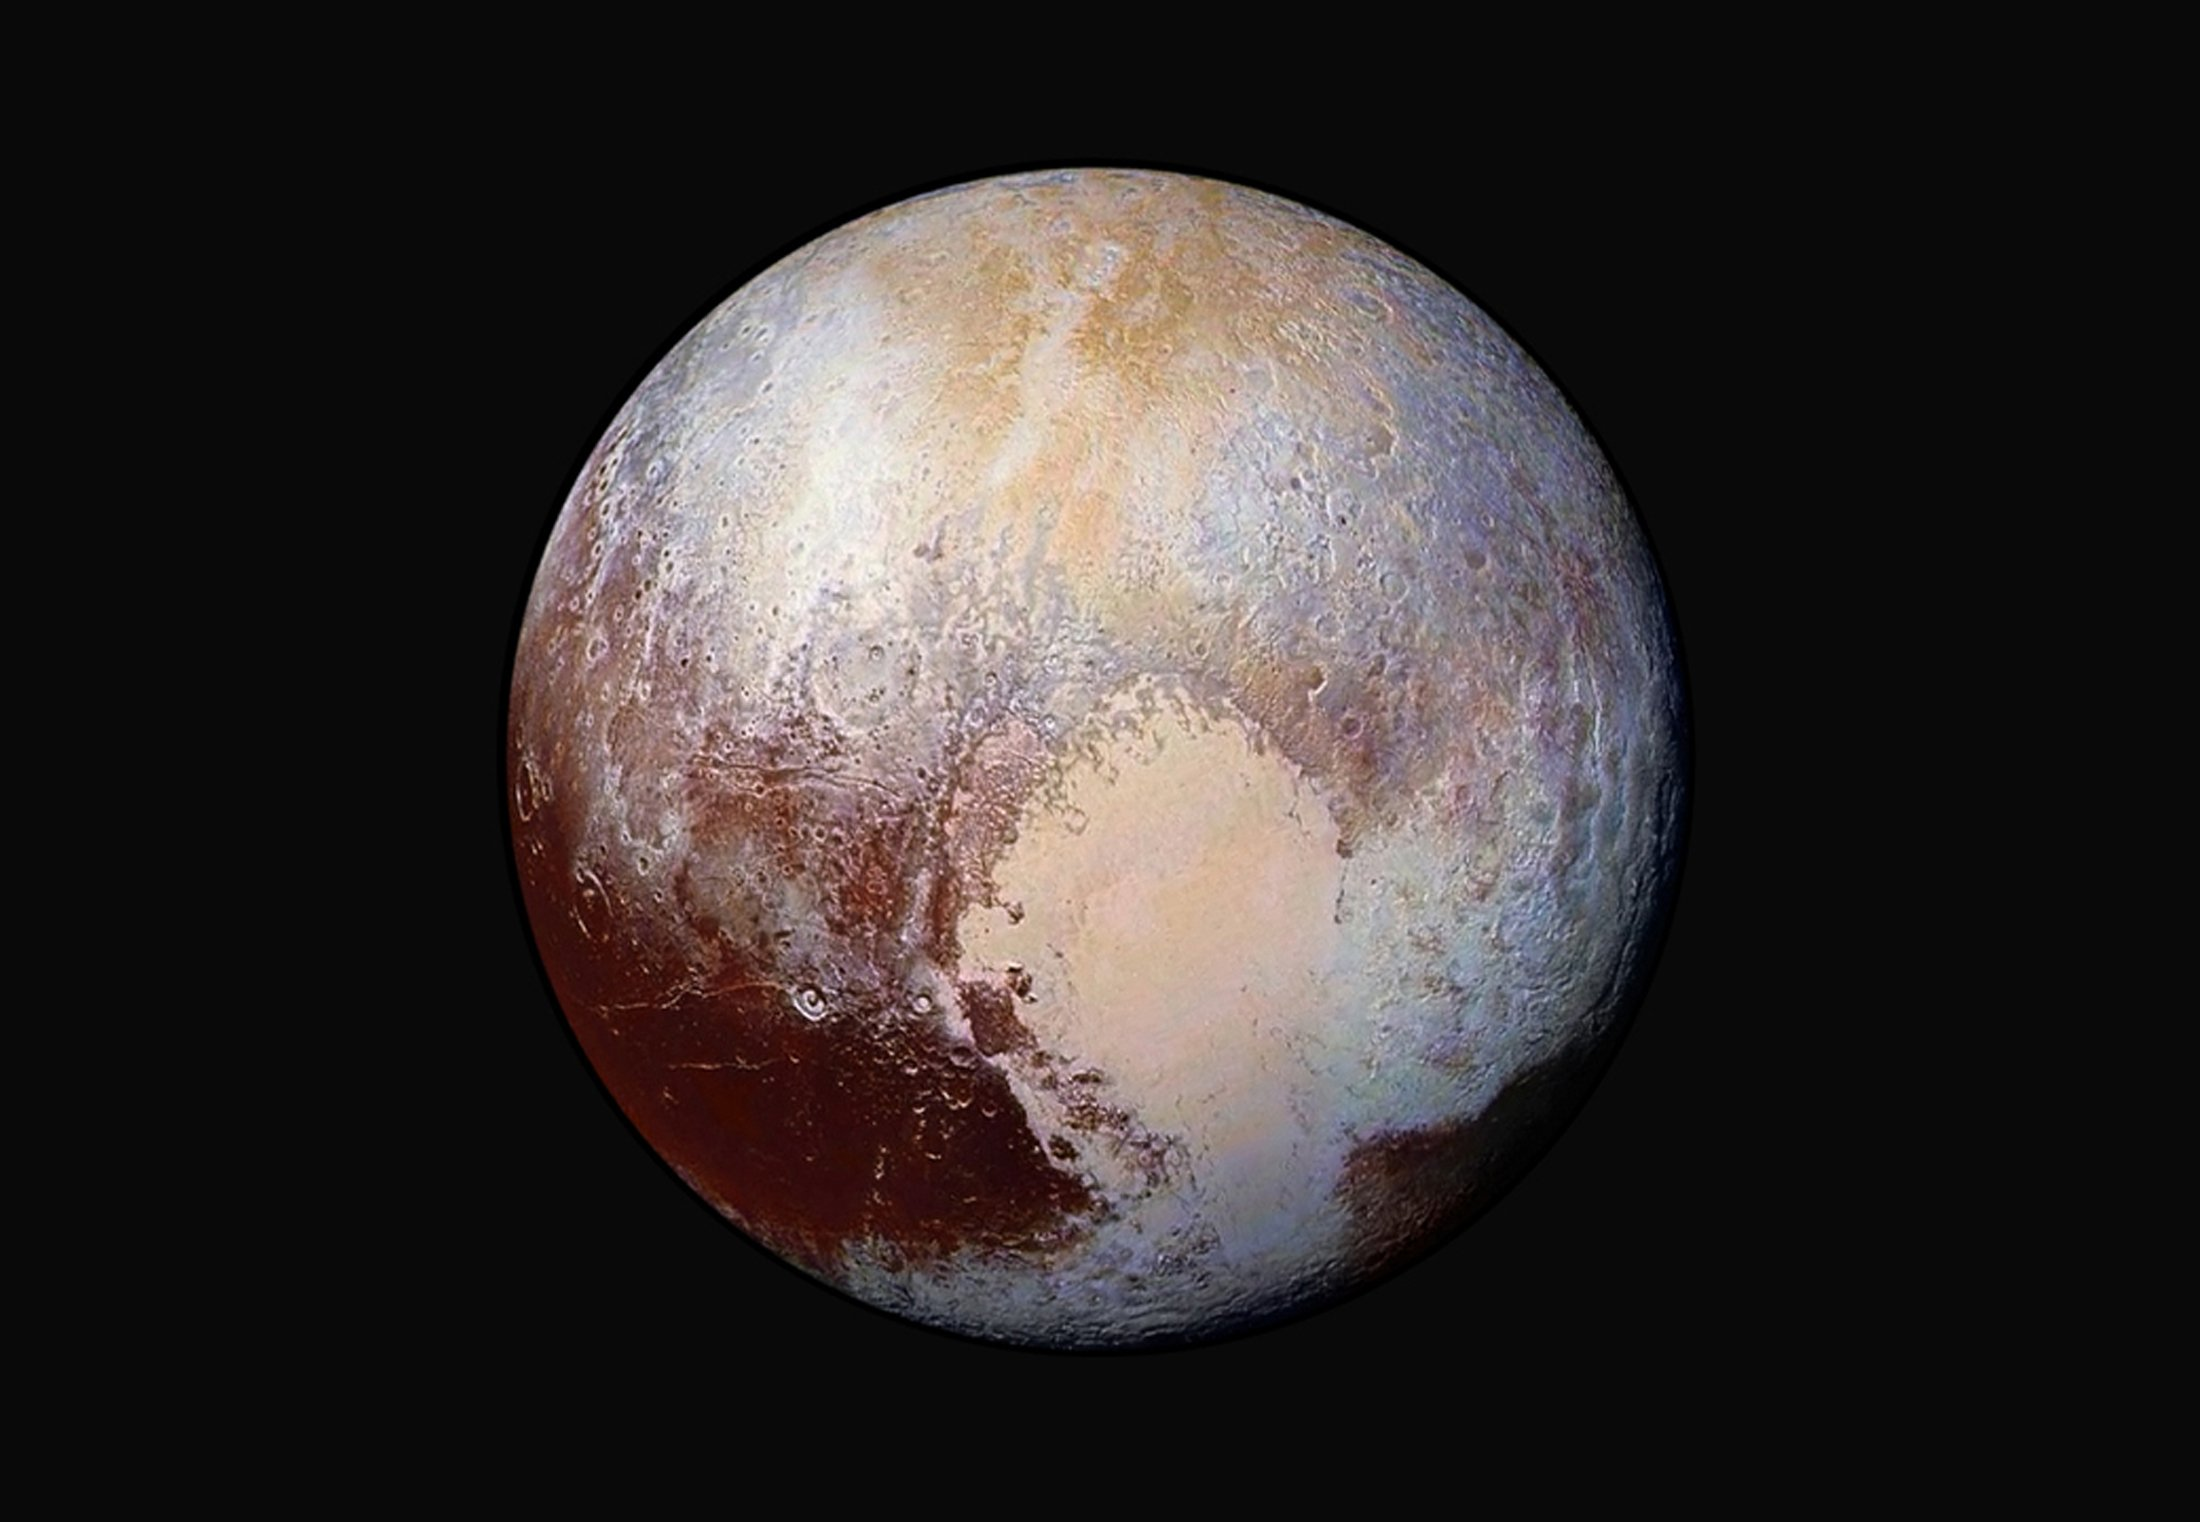 This photo of Pluto was made during the New Horizons spacecraft's historic flyby of the dwarf planet in July 2015. New Horizons is now sailing into the Kuiper Belt for a rendezvous with another small world.